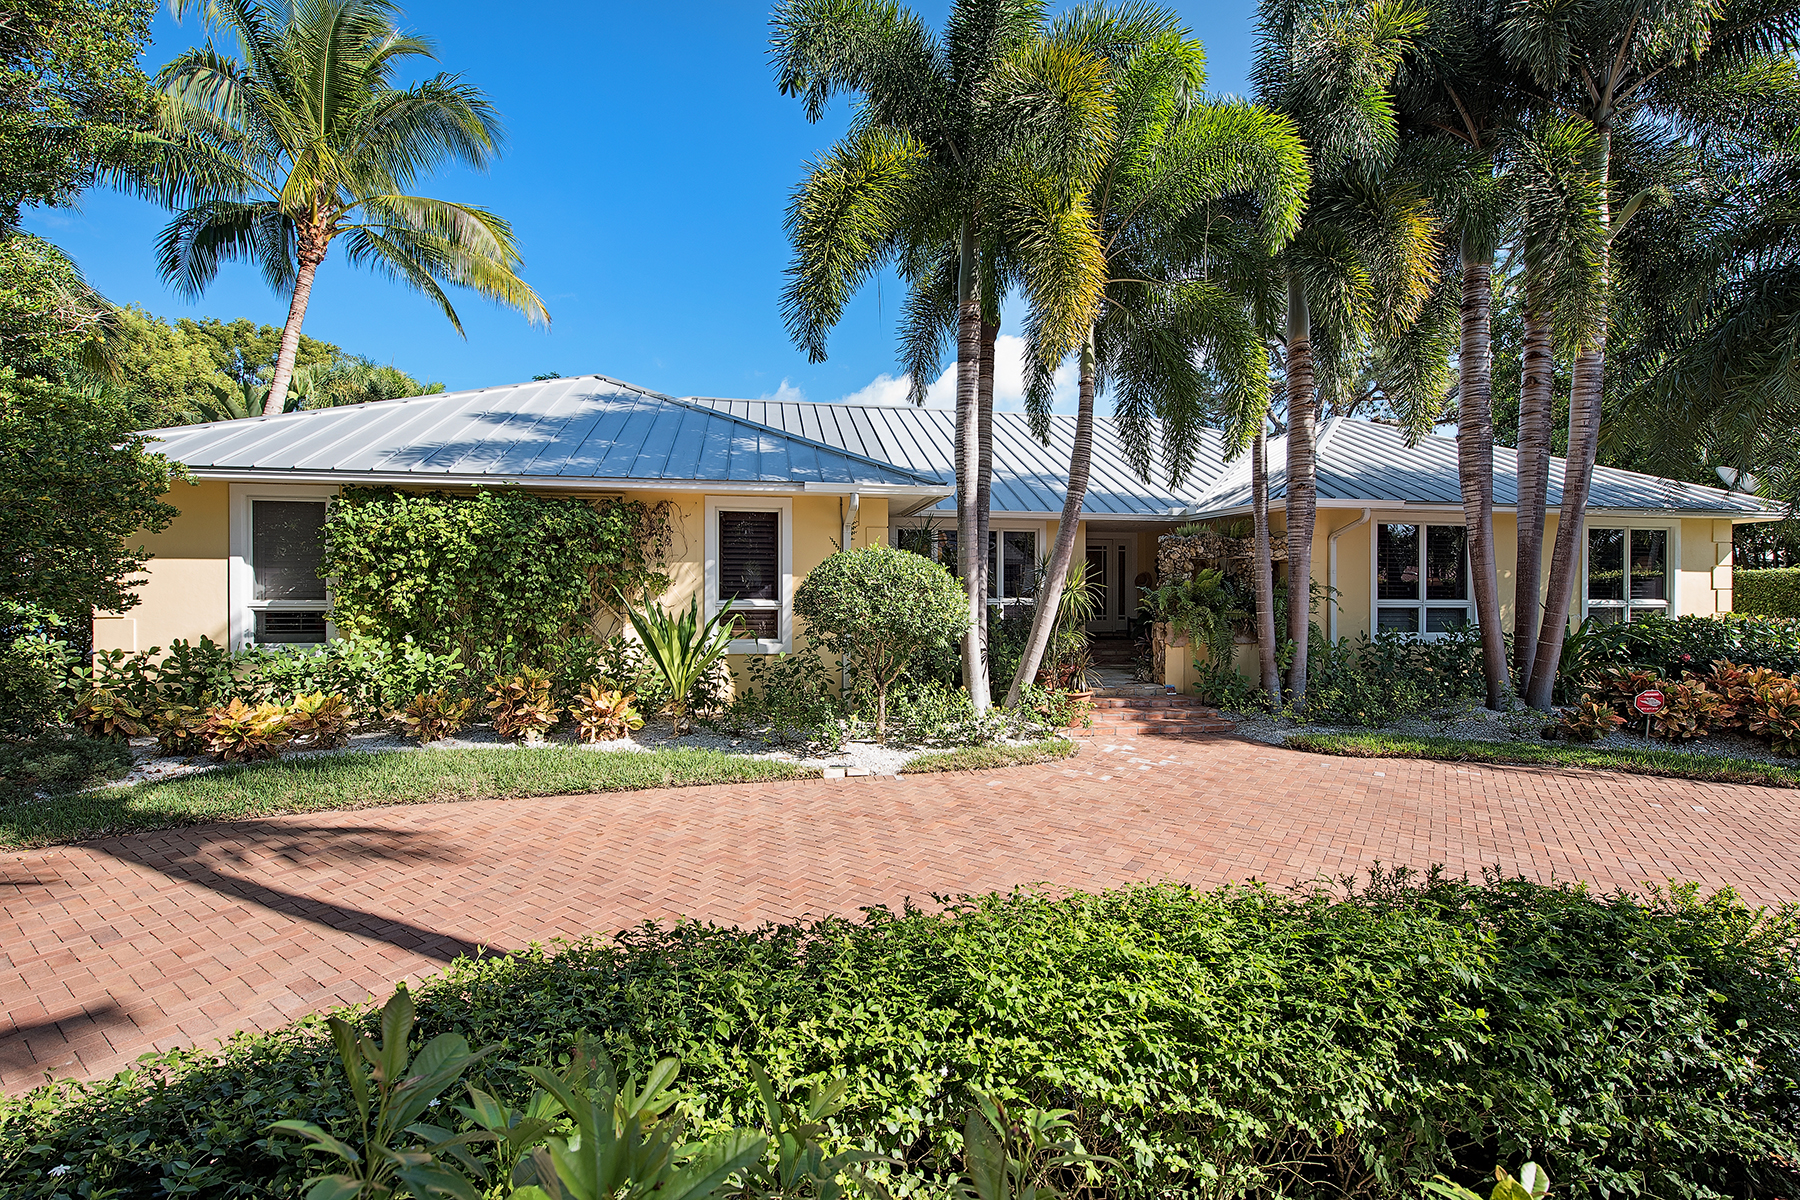 Single Family Home for Sale at COQUINA SANDS 1180 Oleander Dr Coquina Sands, Naples, Florida, 34102 United States